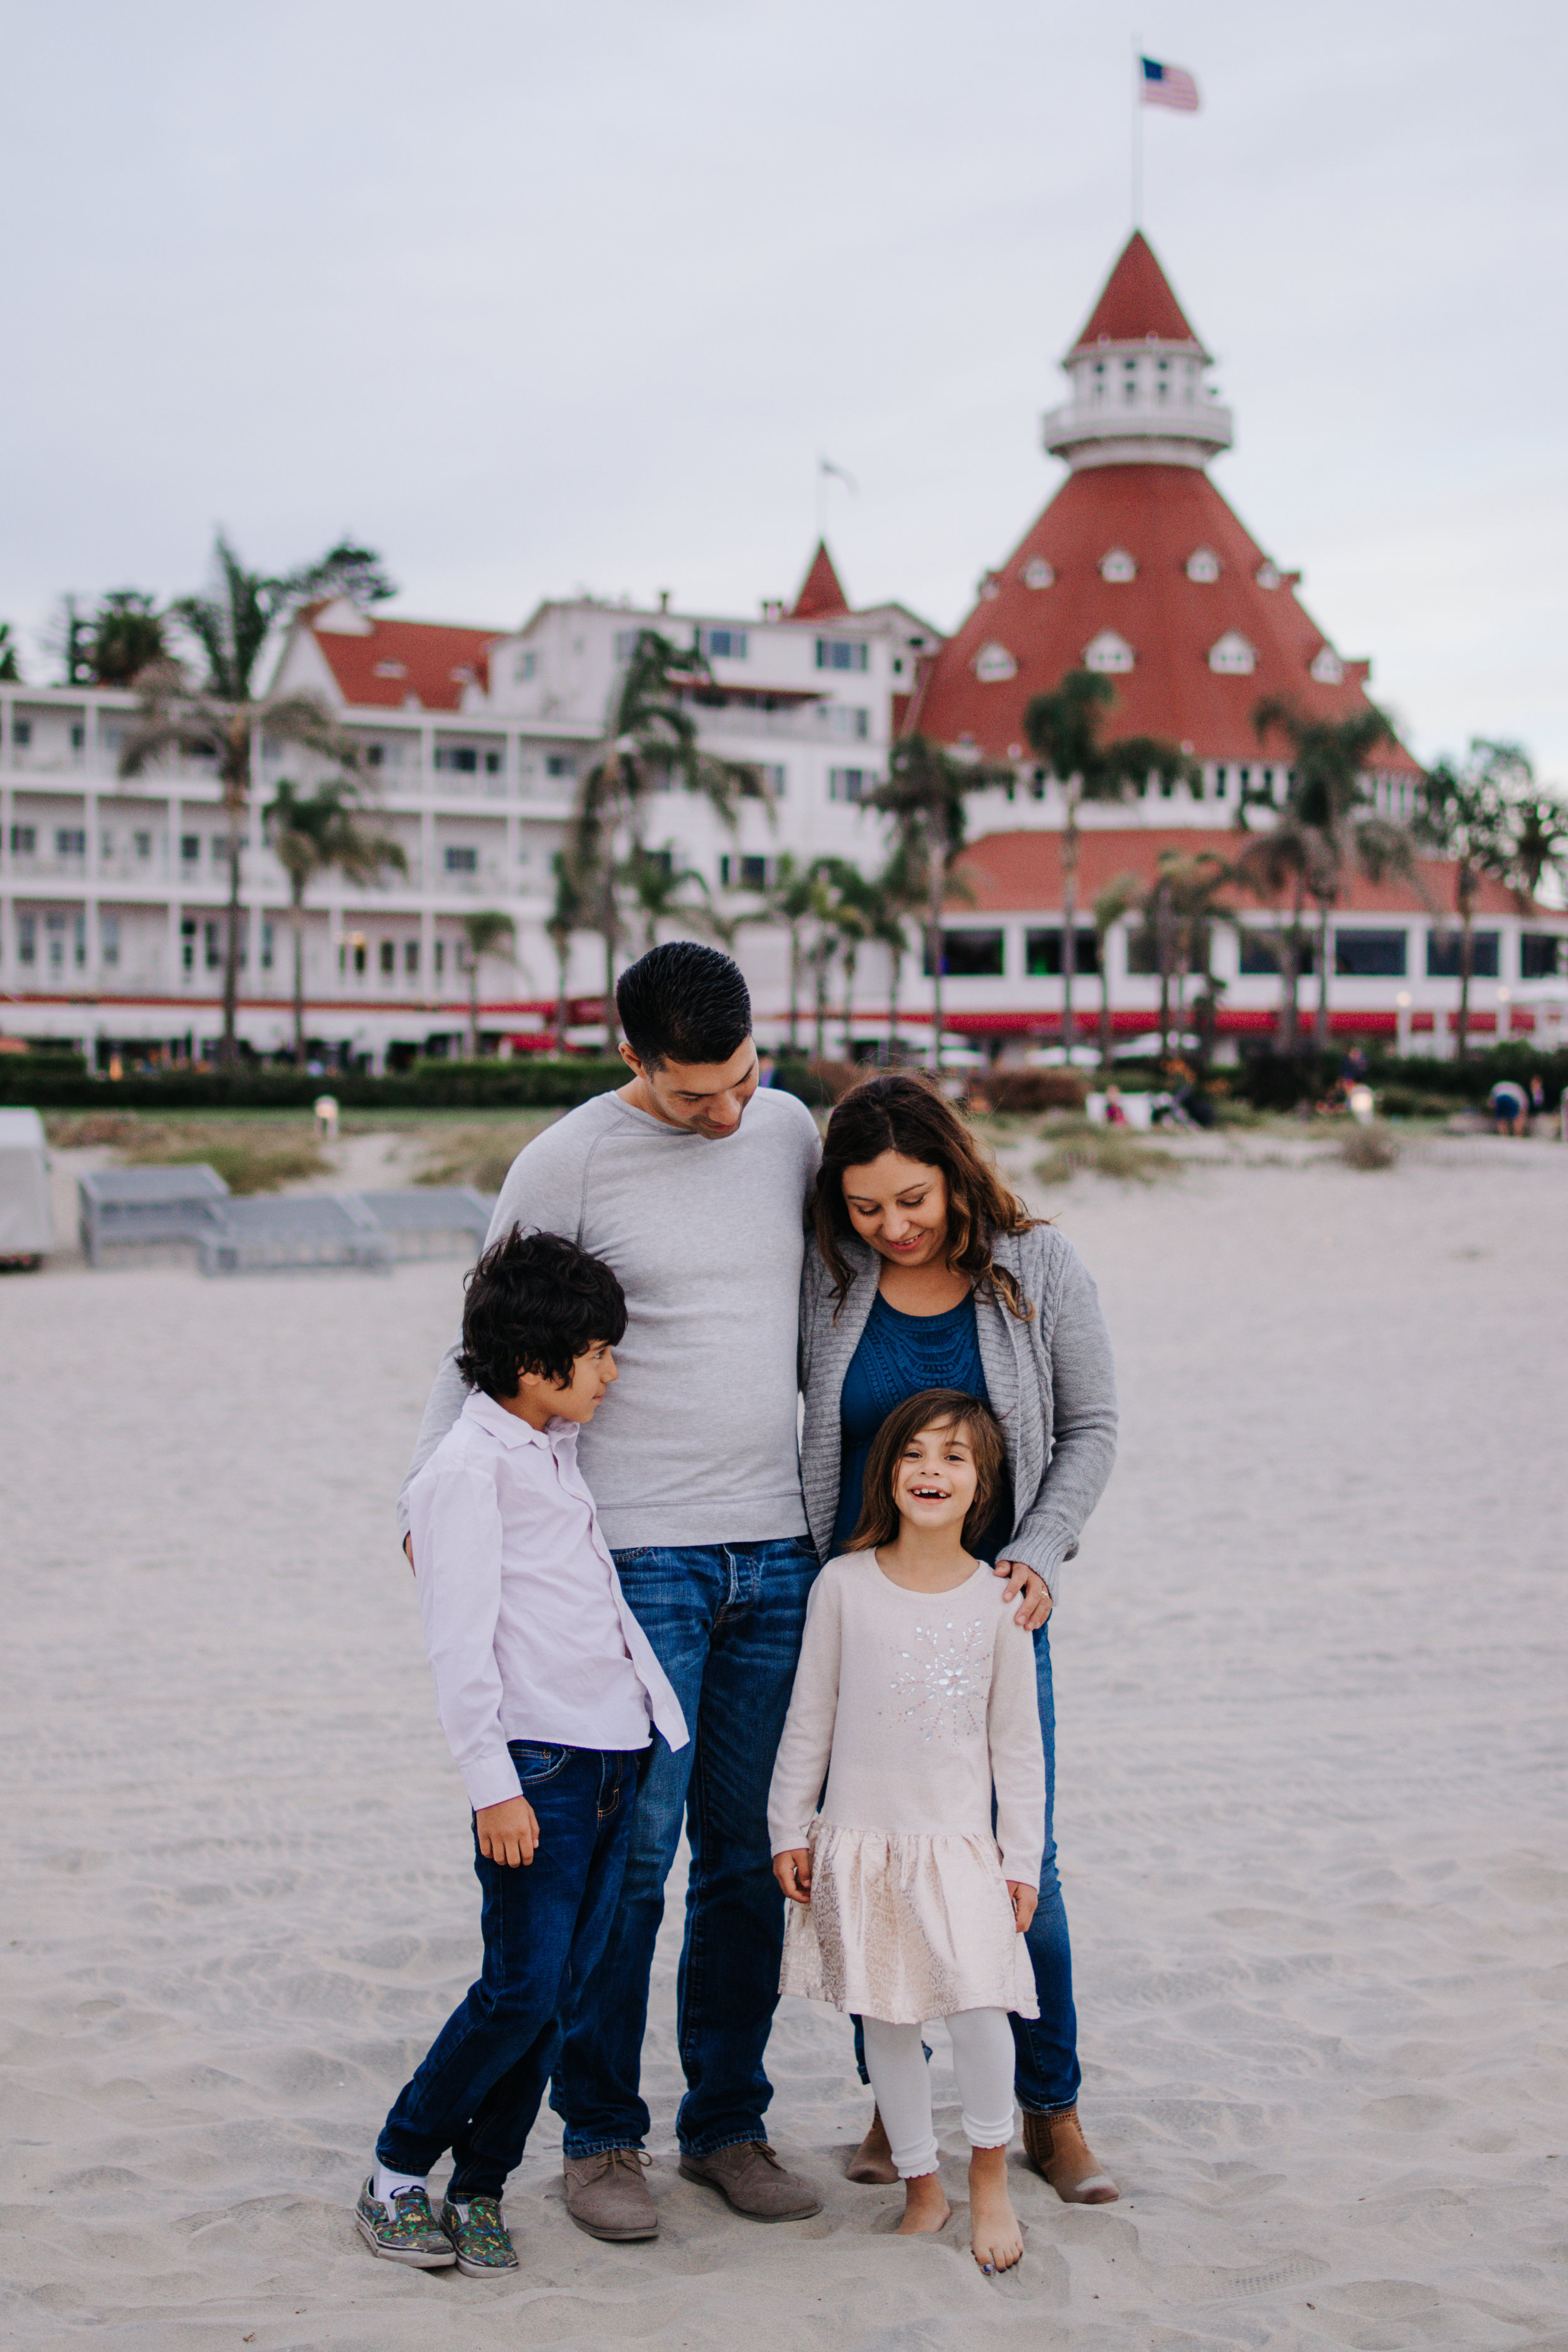 Hotel Del Coronado - This is a classic San Diego spot. I love taking my clients from out of town here because it is so iconic. Sunsets are always beautiful at this spot. The water is clean and sand is white. So dreamy! It can get crowded in the summer, but during off season its empty here!